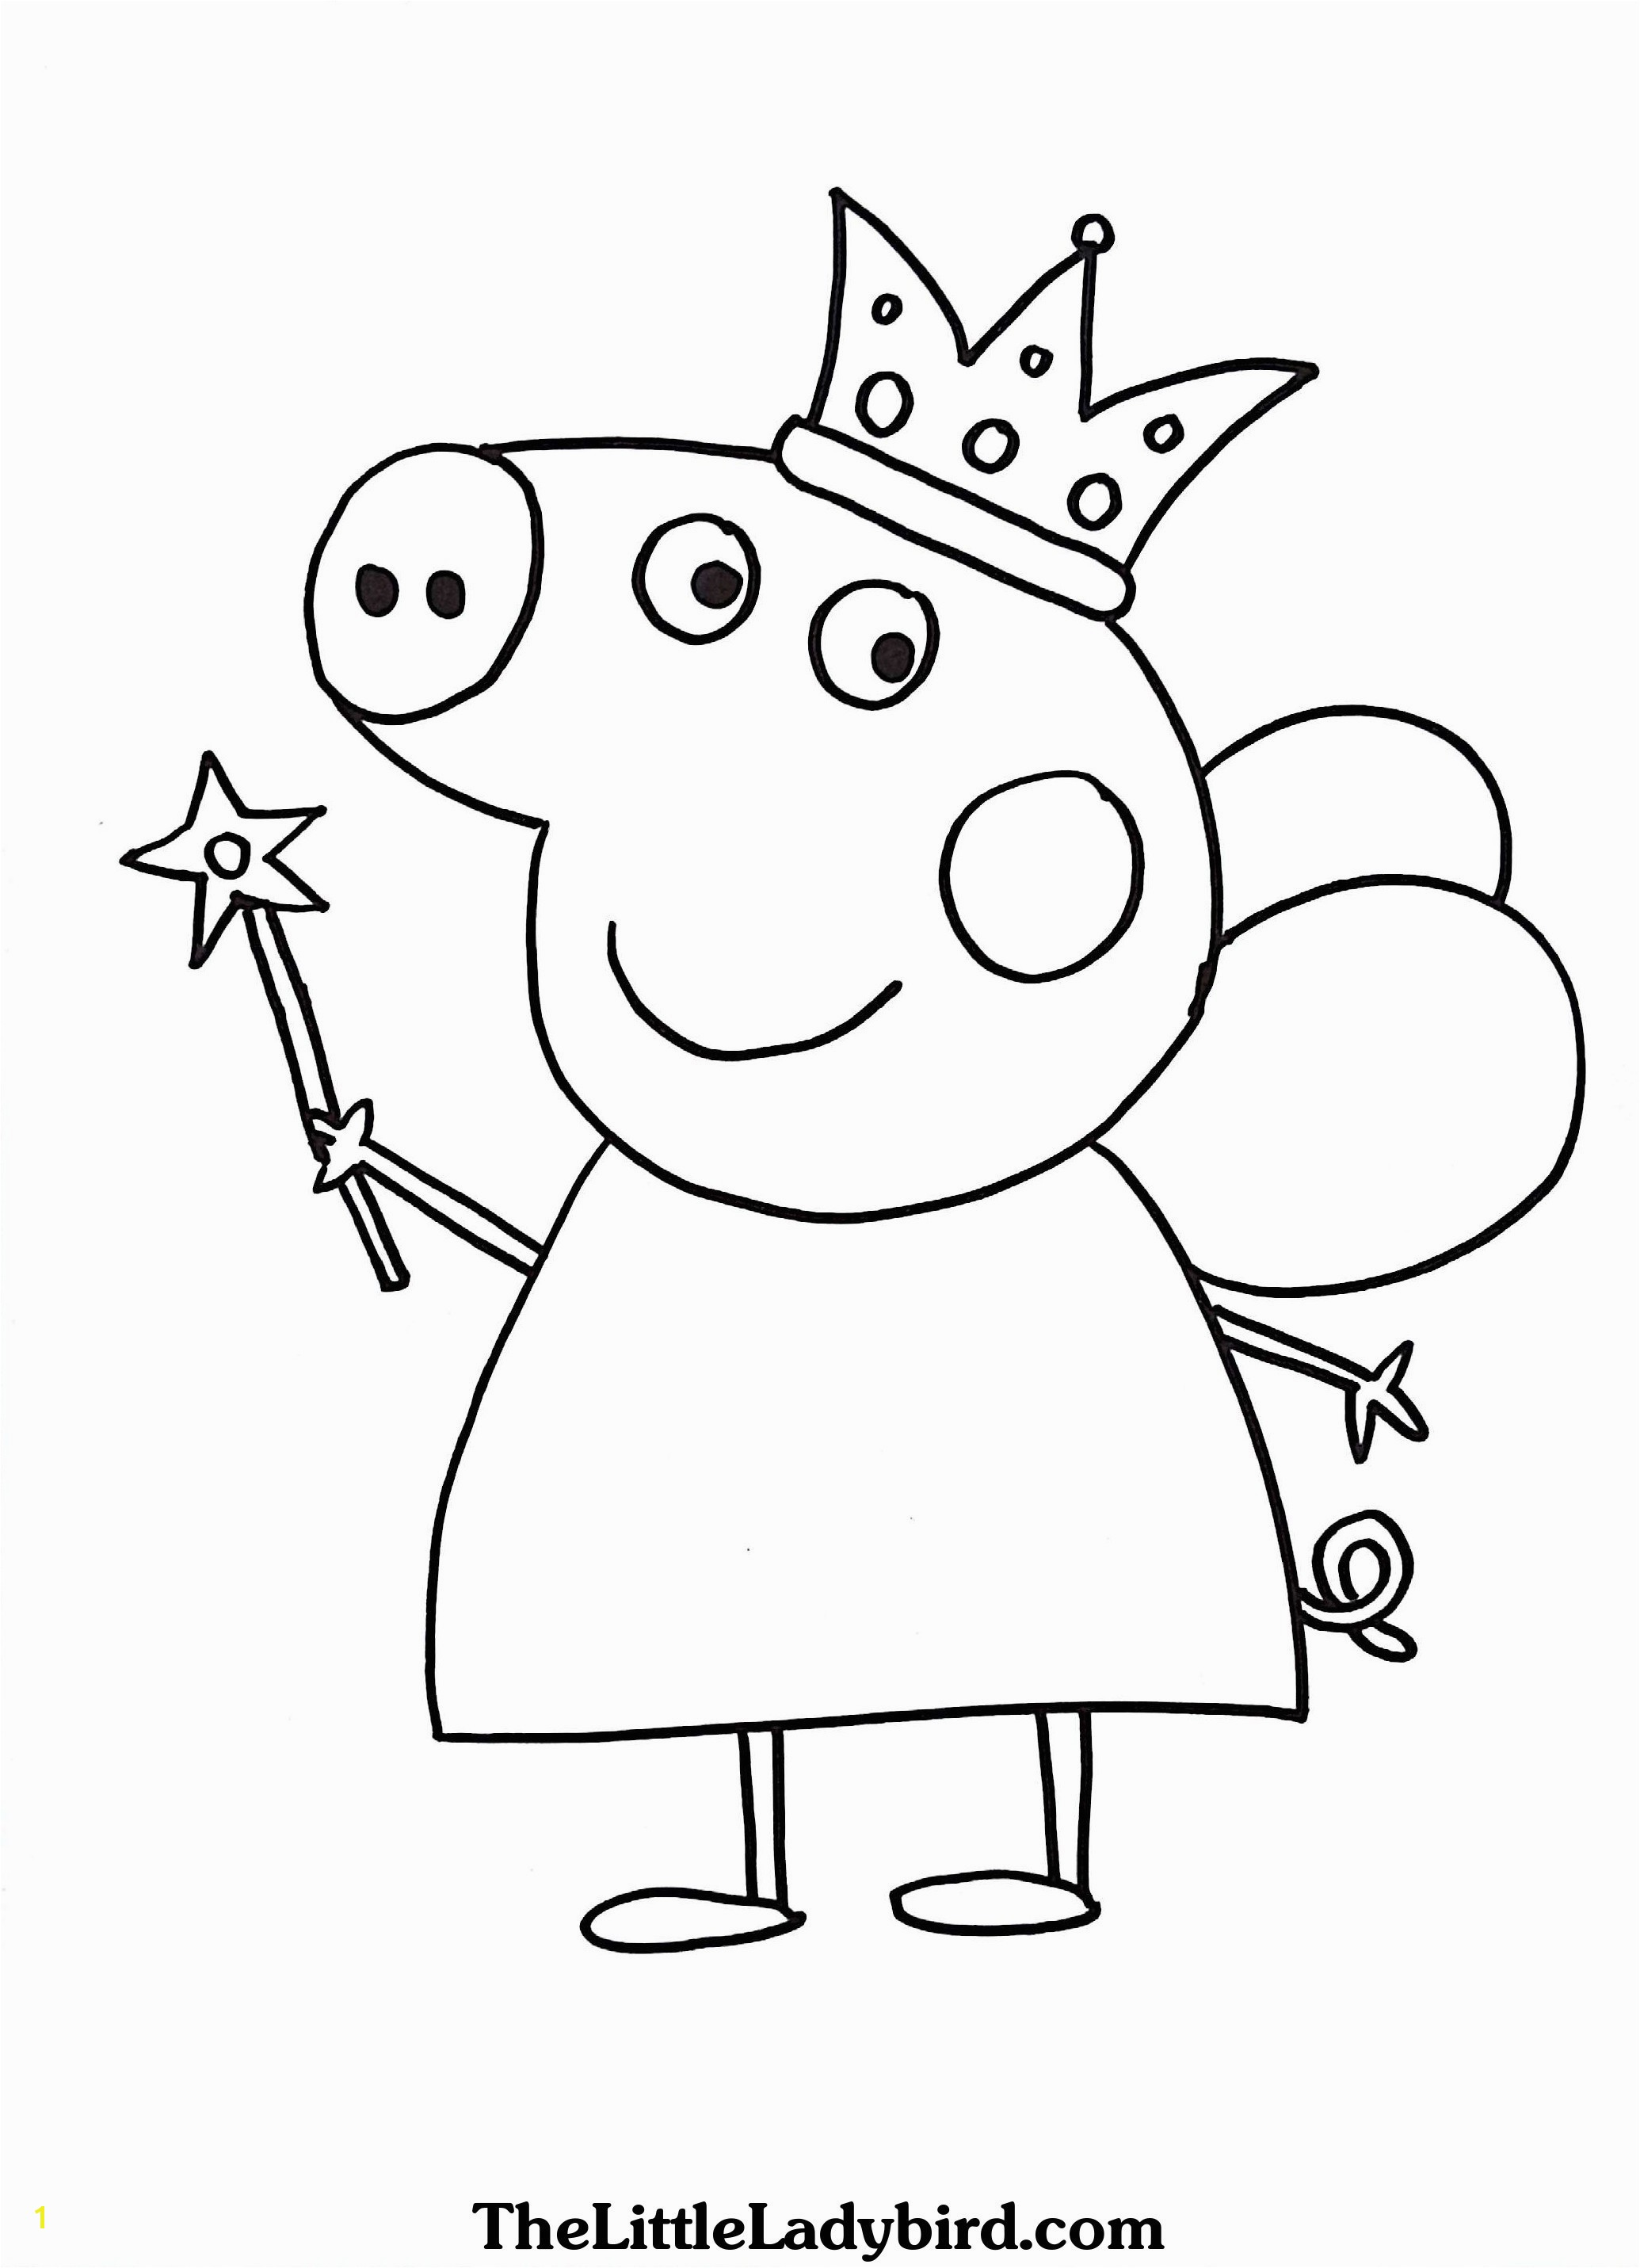 Coloring Pages Of Pigs and Piglets Peppa Pig Coloring Pages Peppa Pig Coloring Pages Heathermarxgallery